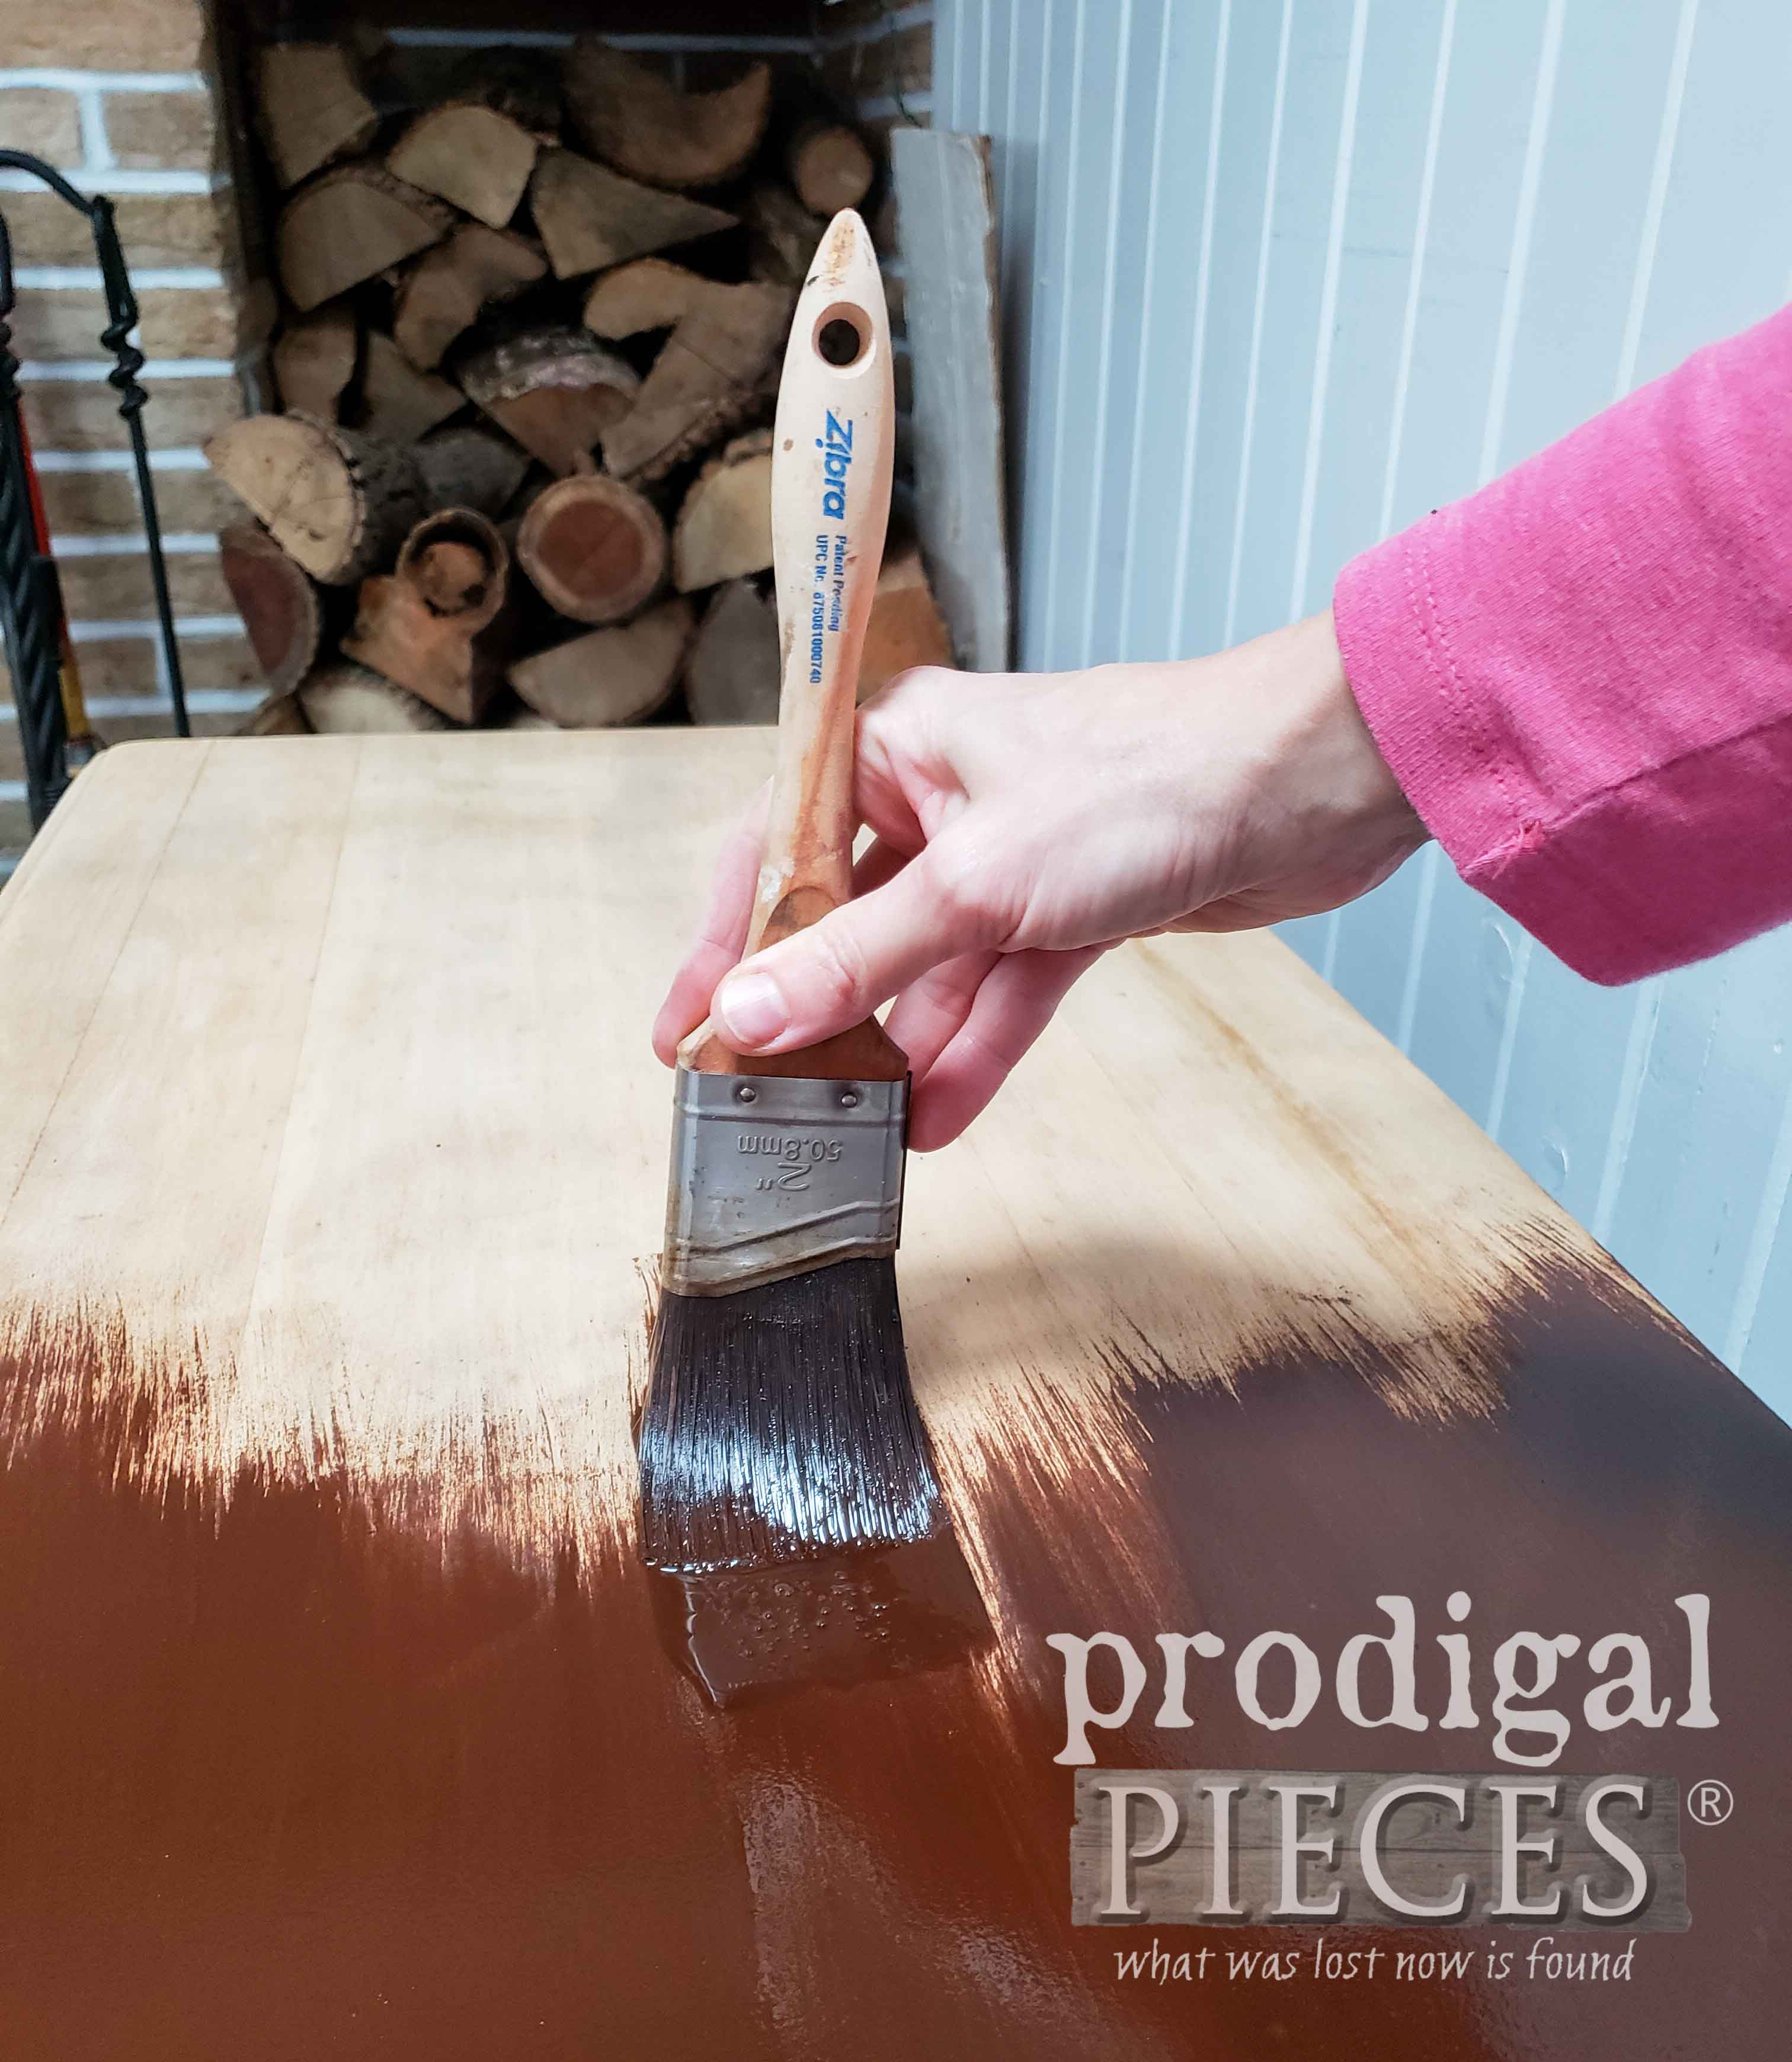 Staining Antique Desk Top with Zibra Paint Brush | prodigalpieces.com